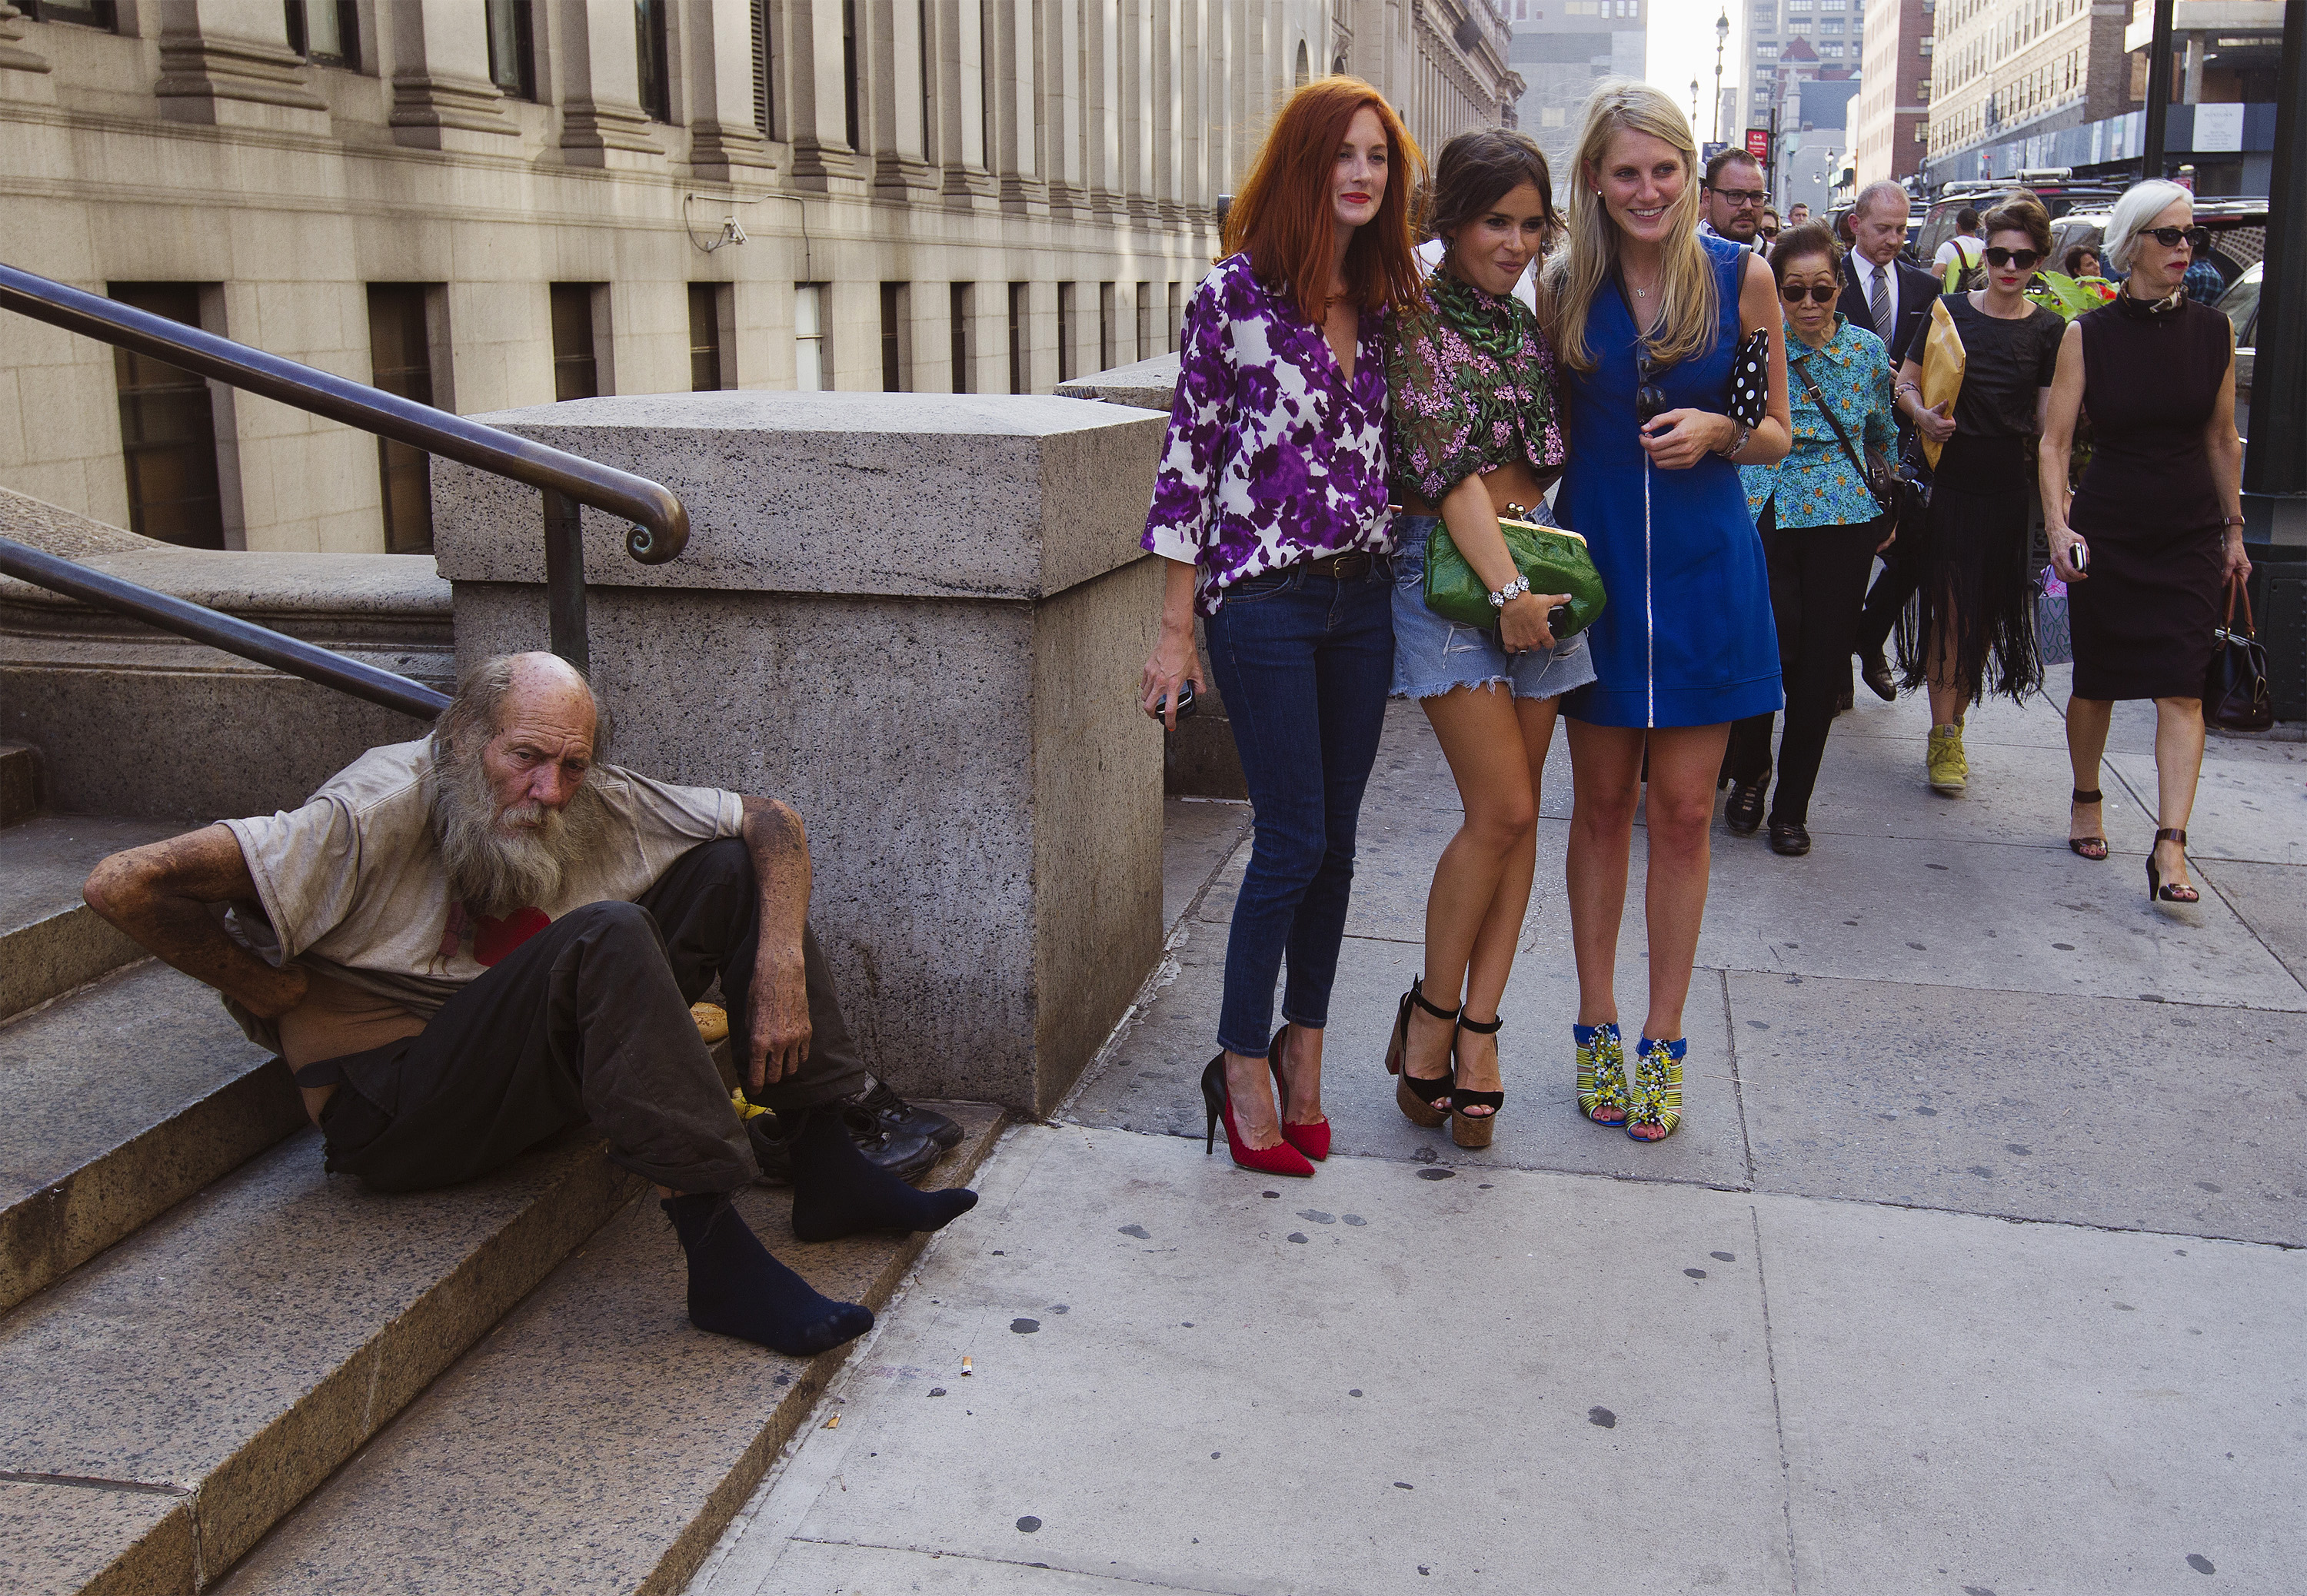 Fashionistas ignore homeless man on NYC sidewalk